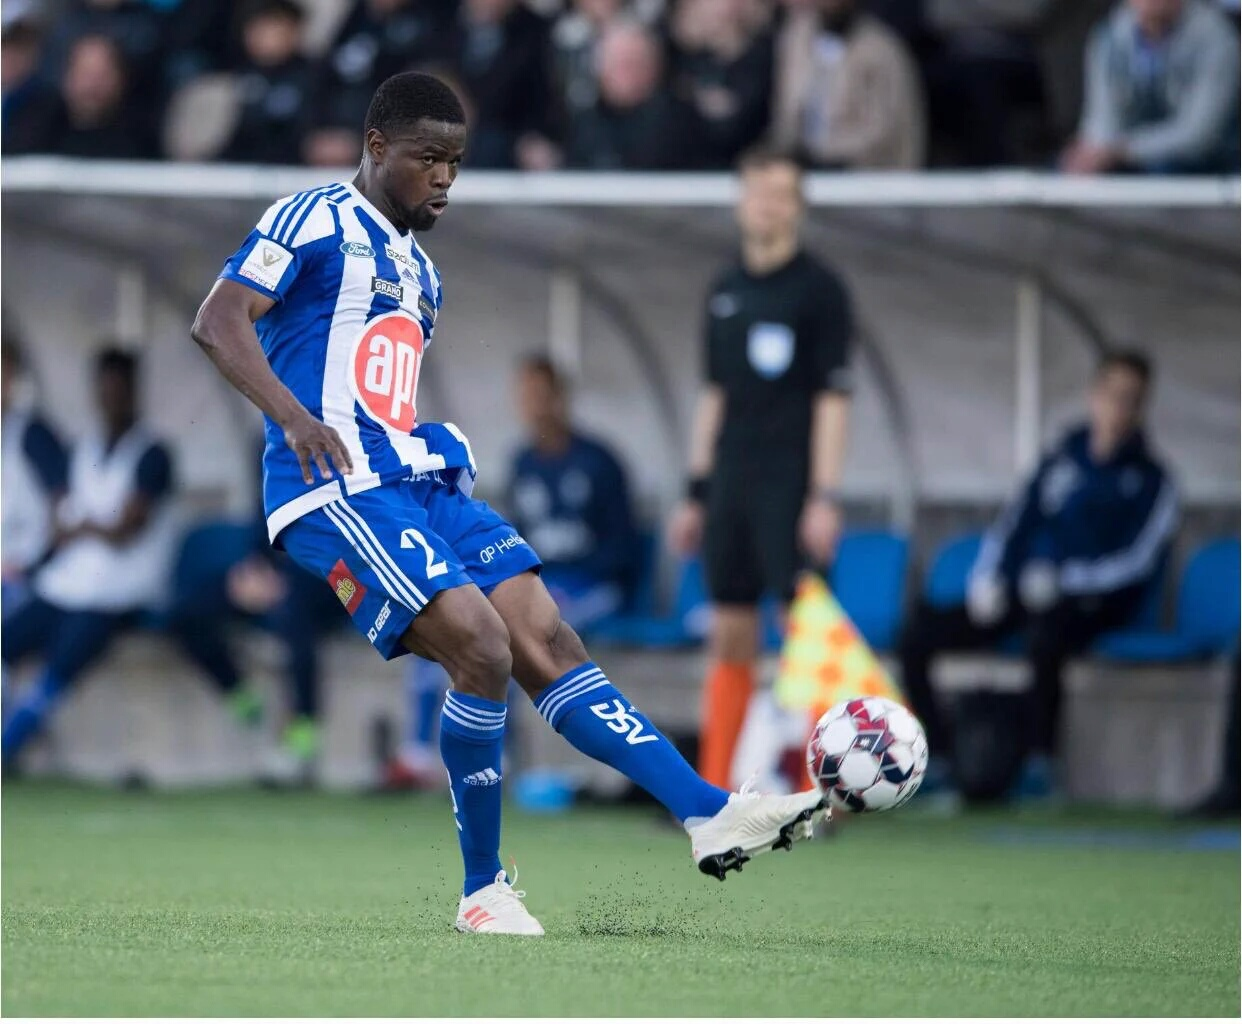 Echiejile Terminates Contract With Finnish Club HJK Helsinki